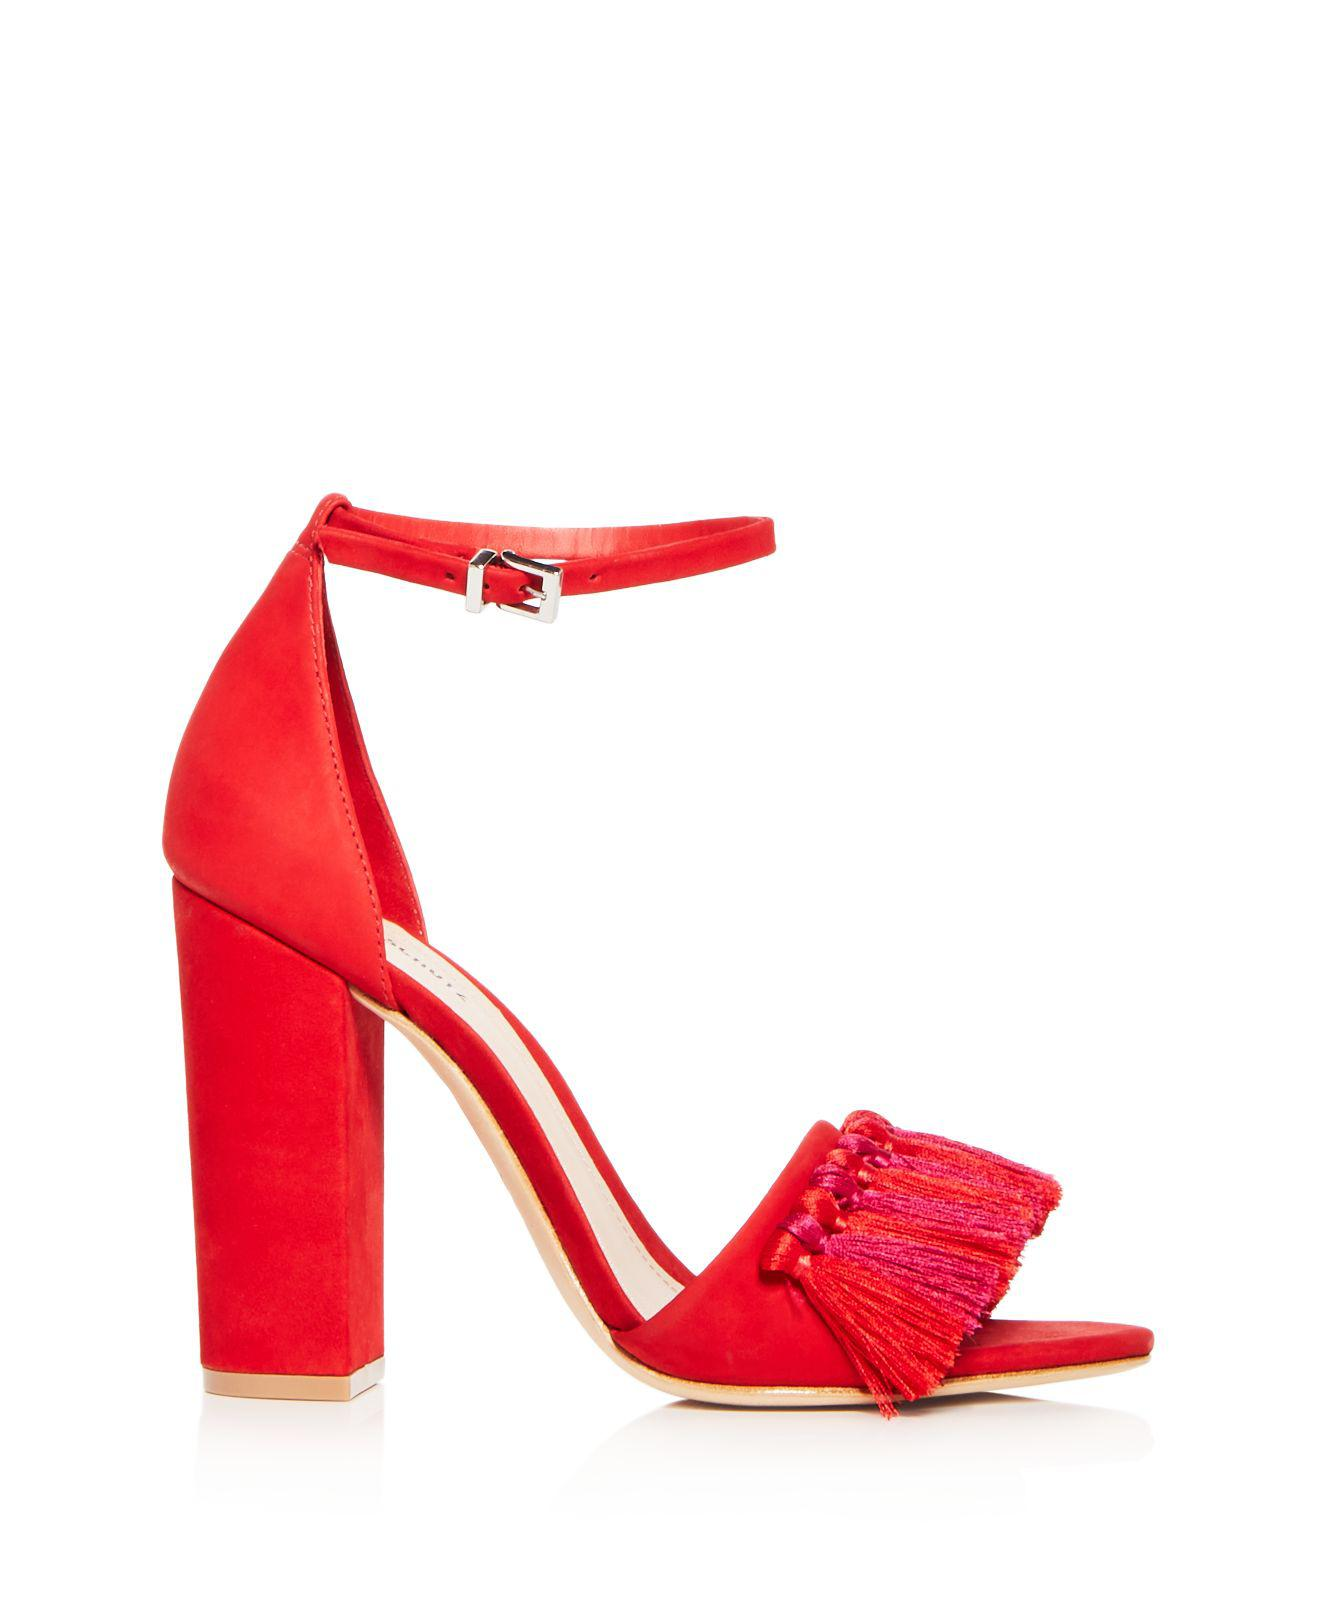 1f4b5417d8 Schutz Women's Detty Suede Tassel High Block Heel Sandals in Red - Lyst